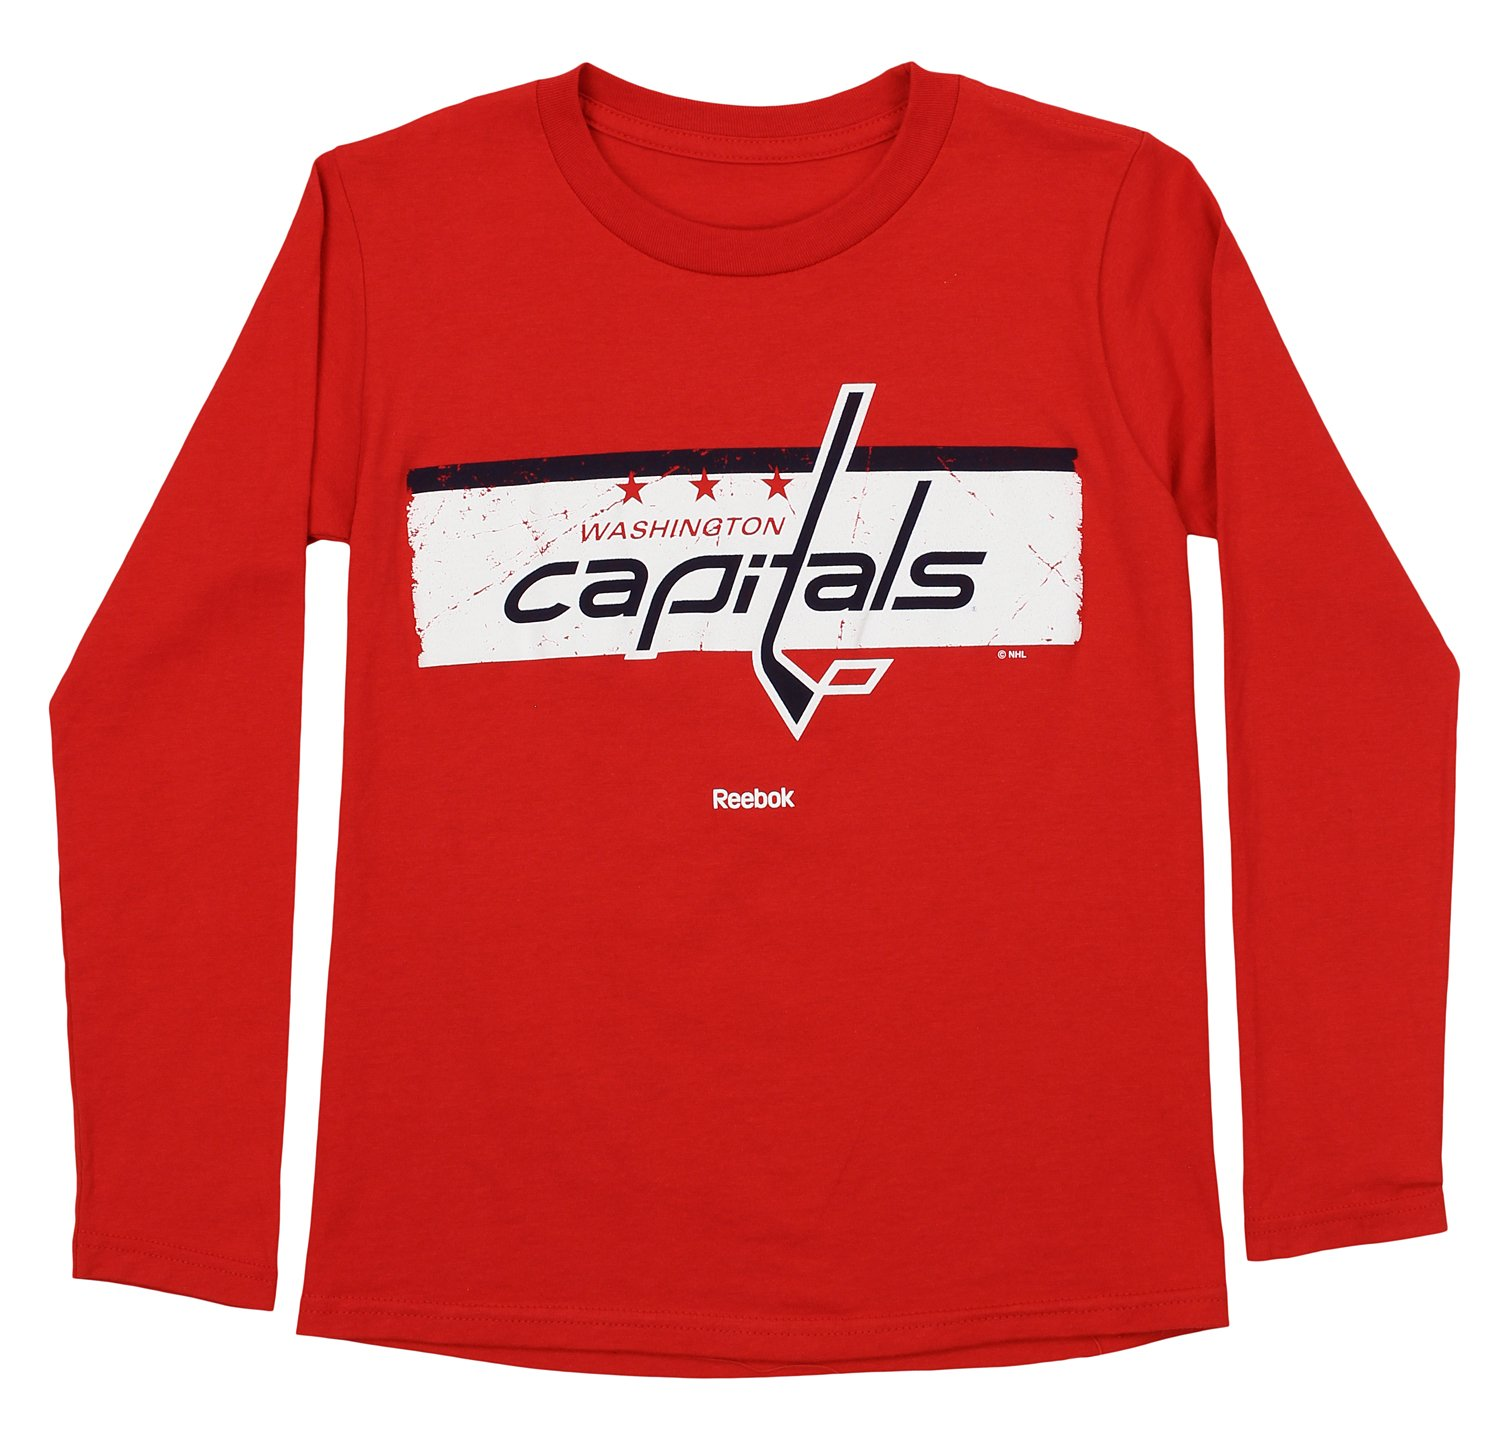 075f18a127ab Outerstuff NHL Youth Boys Washington Capitals Honor Code Long Sleeve Tee,  Red